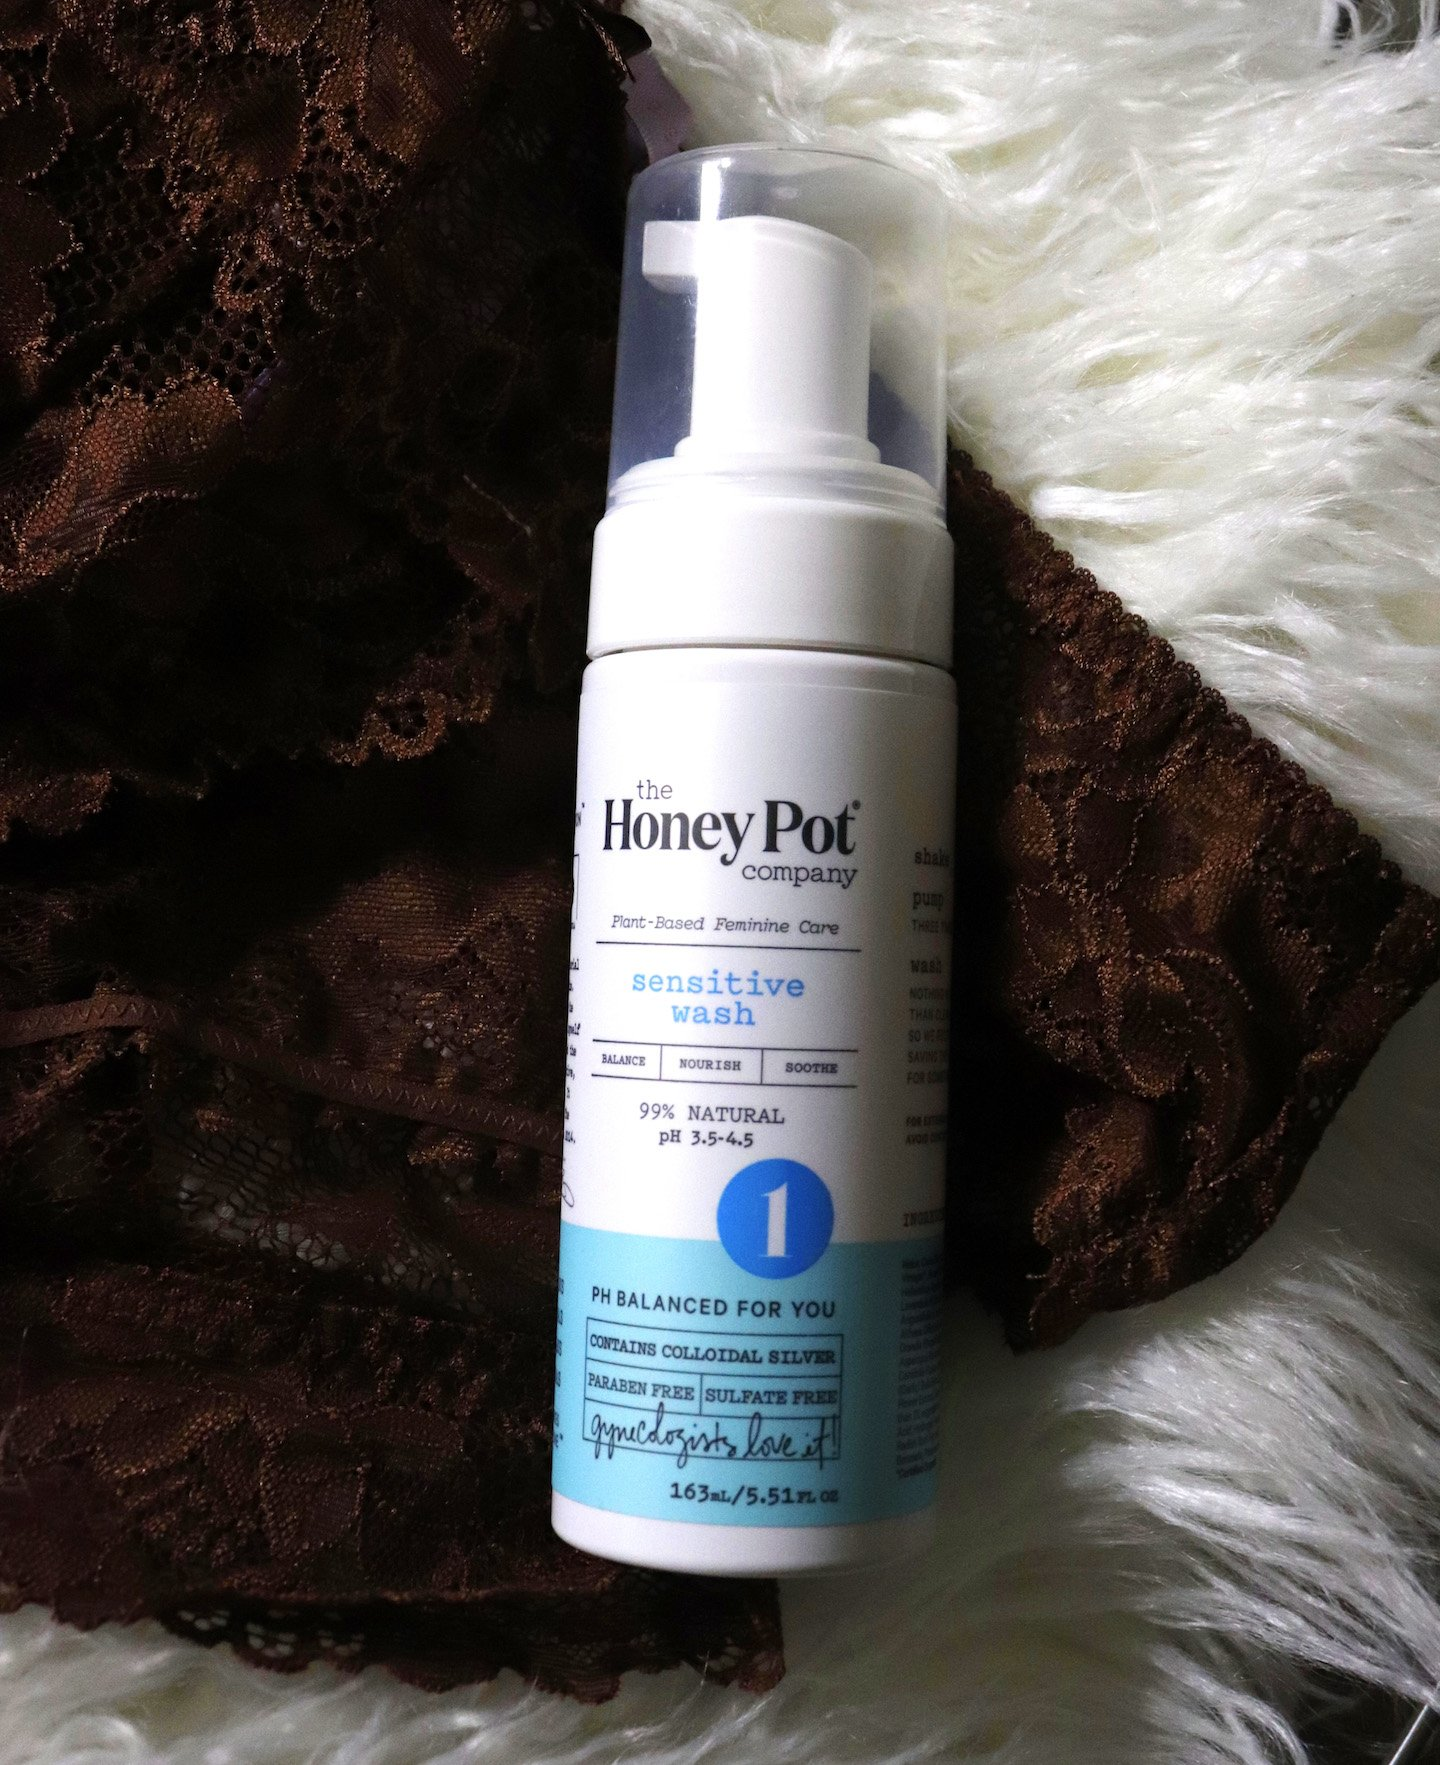 The Honey Pot Sensitive Feminine Wash Review